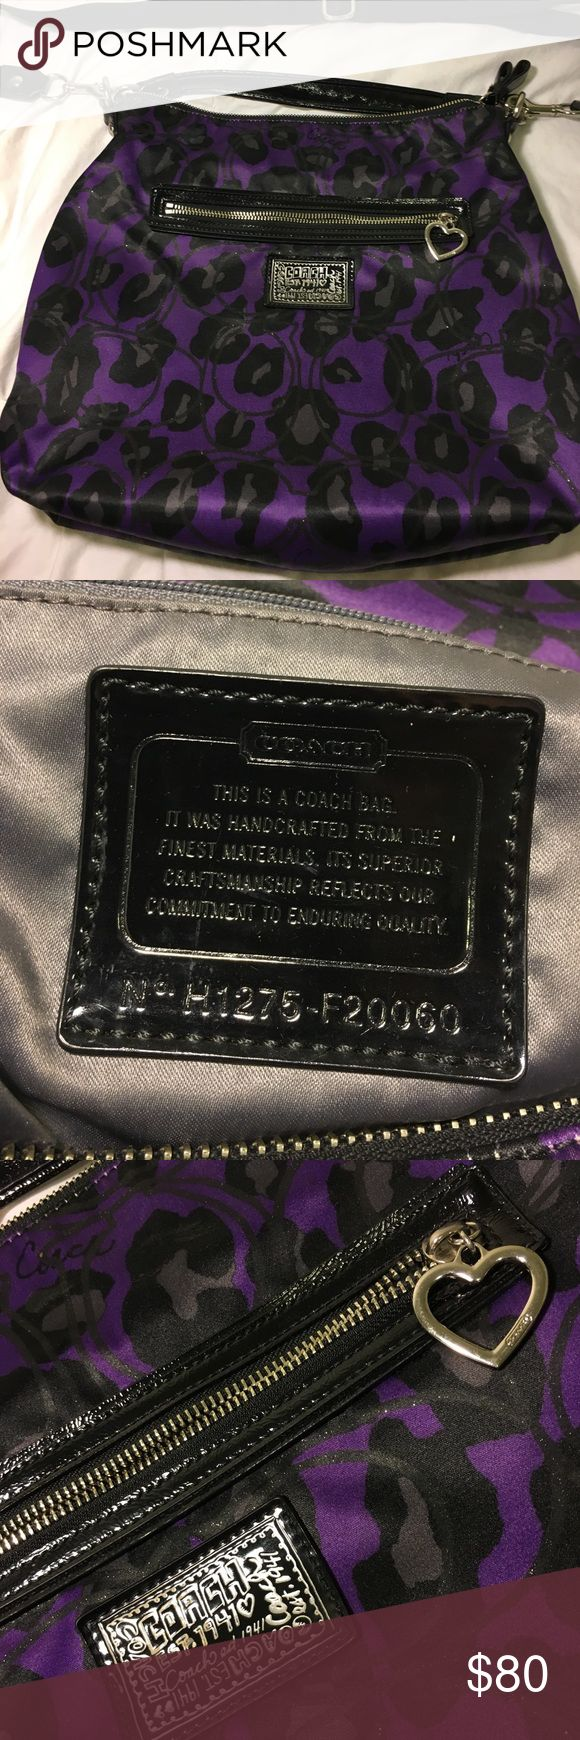 Royal Purple Coach Bag Deep purple Coach messenger bag, used twice. Has 3 pockets inside, one zip pocket outside, and the attachable strap. No scuffs, scratches or marks. Super cute with any outfit! Coach Bags Crossbody Bags